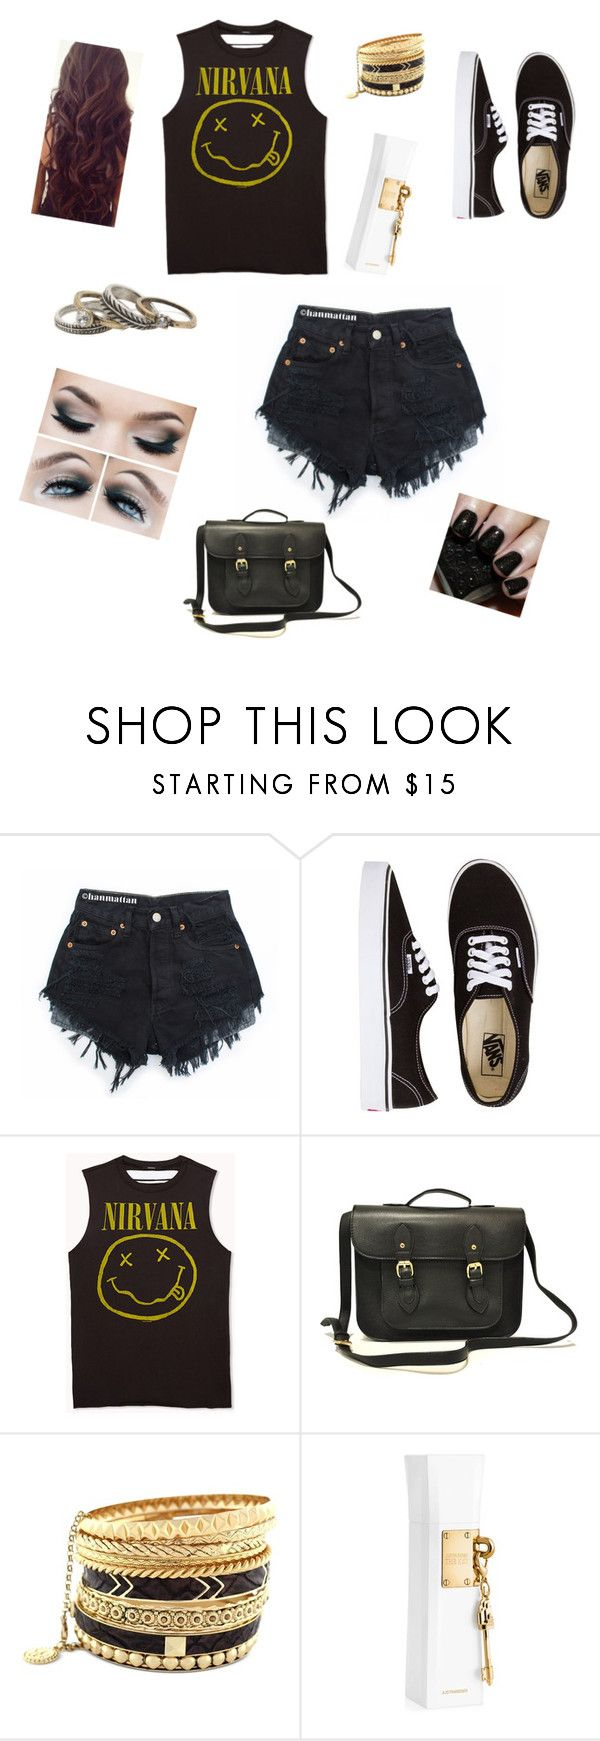 28 by braveryandlove on Polyvore featuring moda, Forever 21, Vans, Jessica Simpson, With Love From CA and Justin Bieber